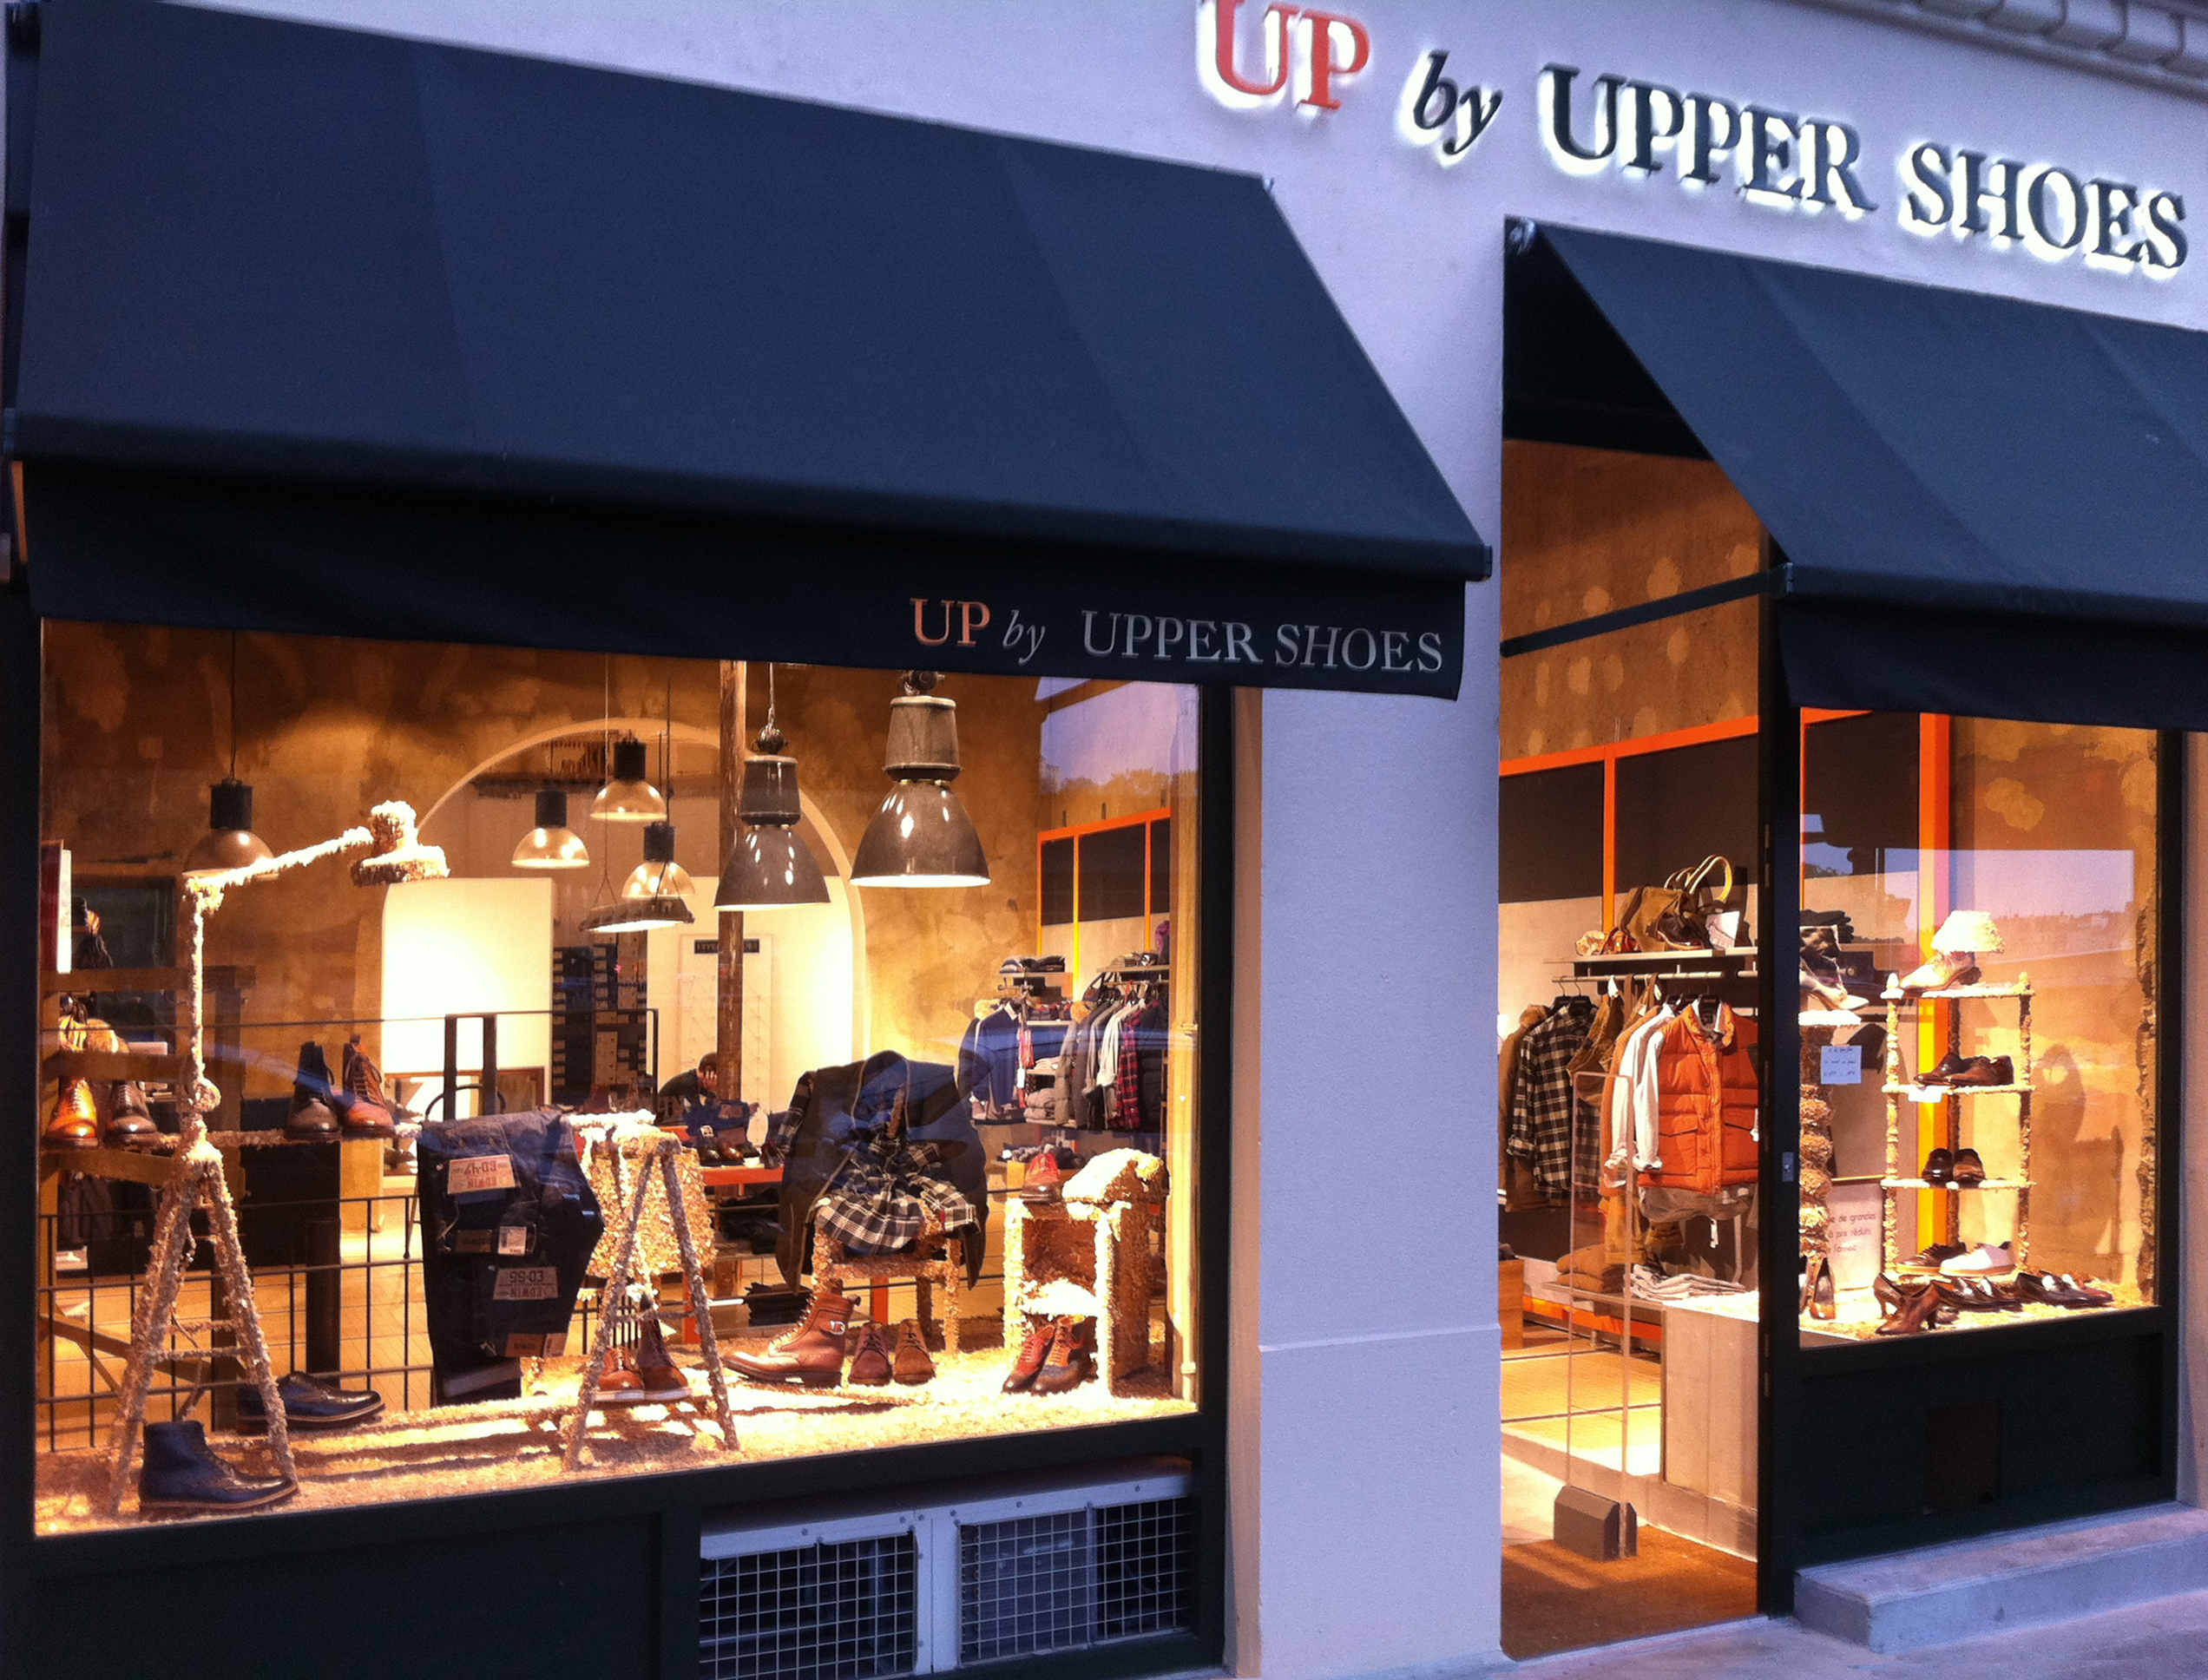 UP by UPPER SHOES